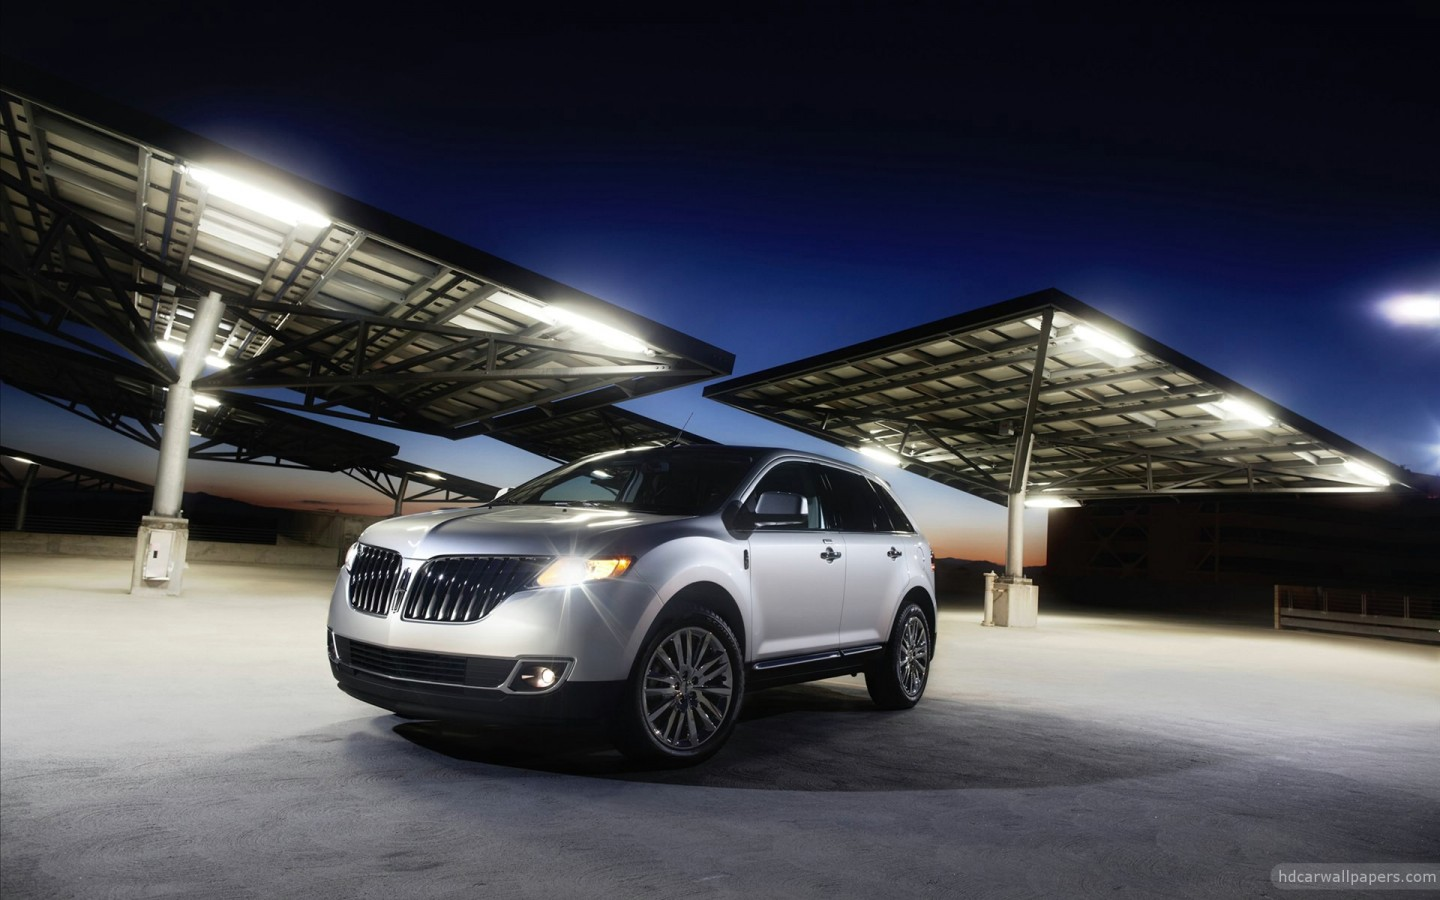 2016 Lincoln Mkt >> 2012 Lincoln MKX 3 Wallpaper   HD Car Wallpapers   ID #2218